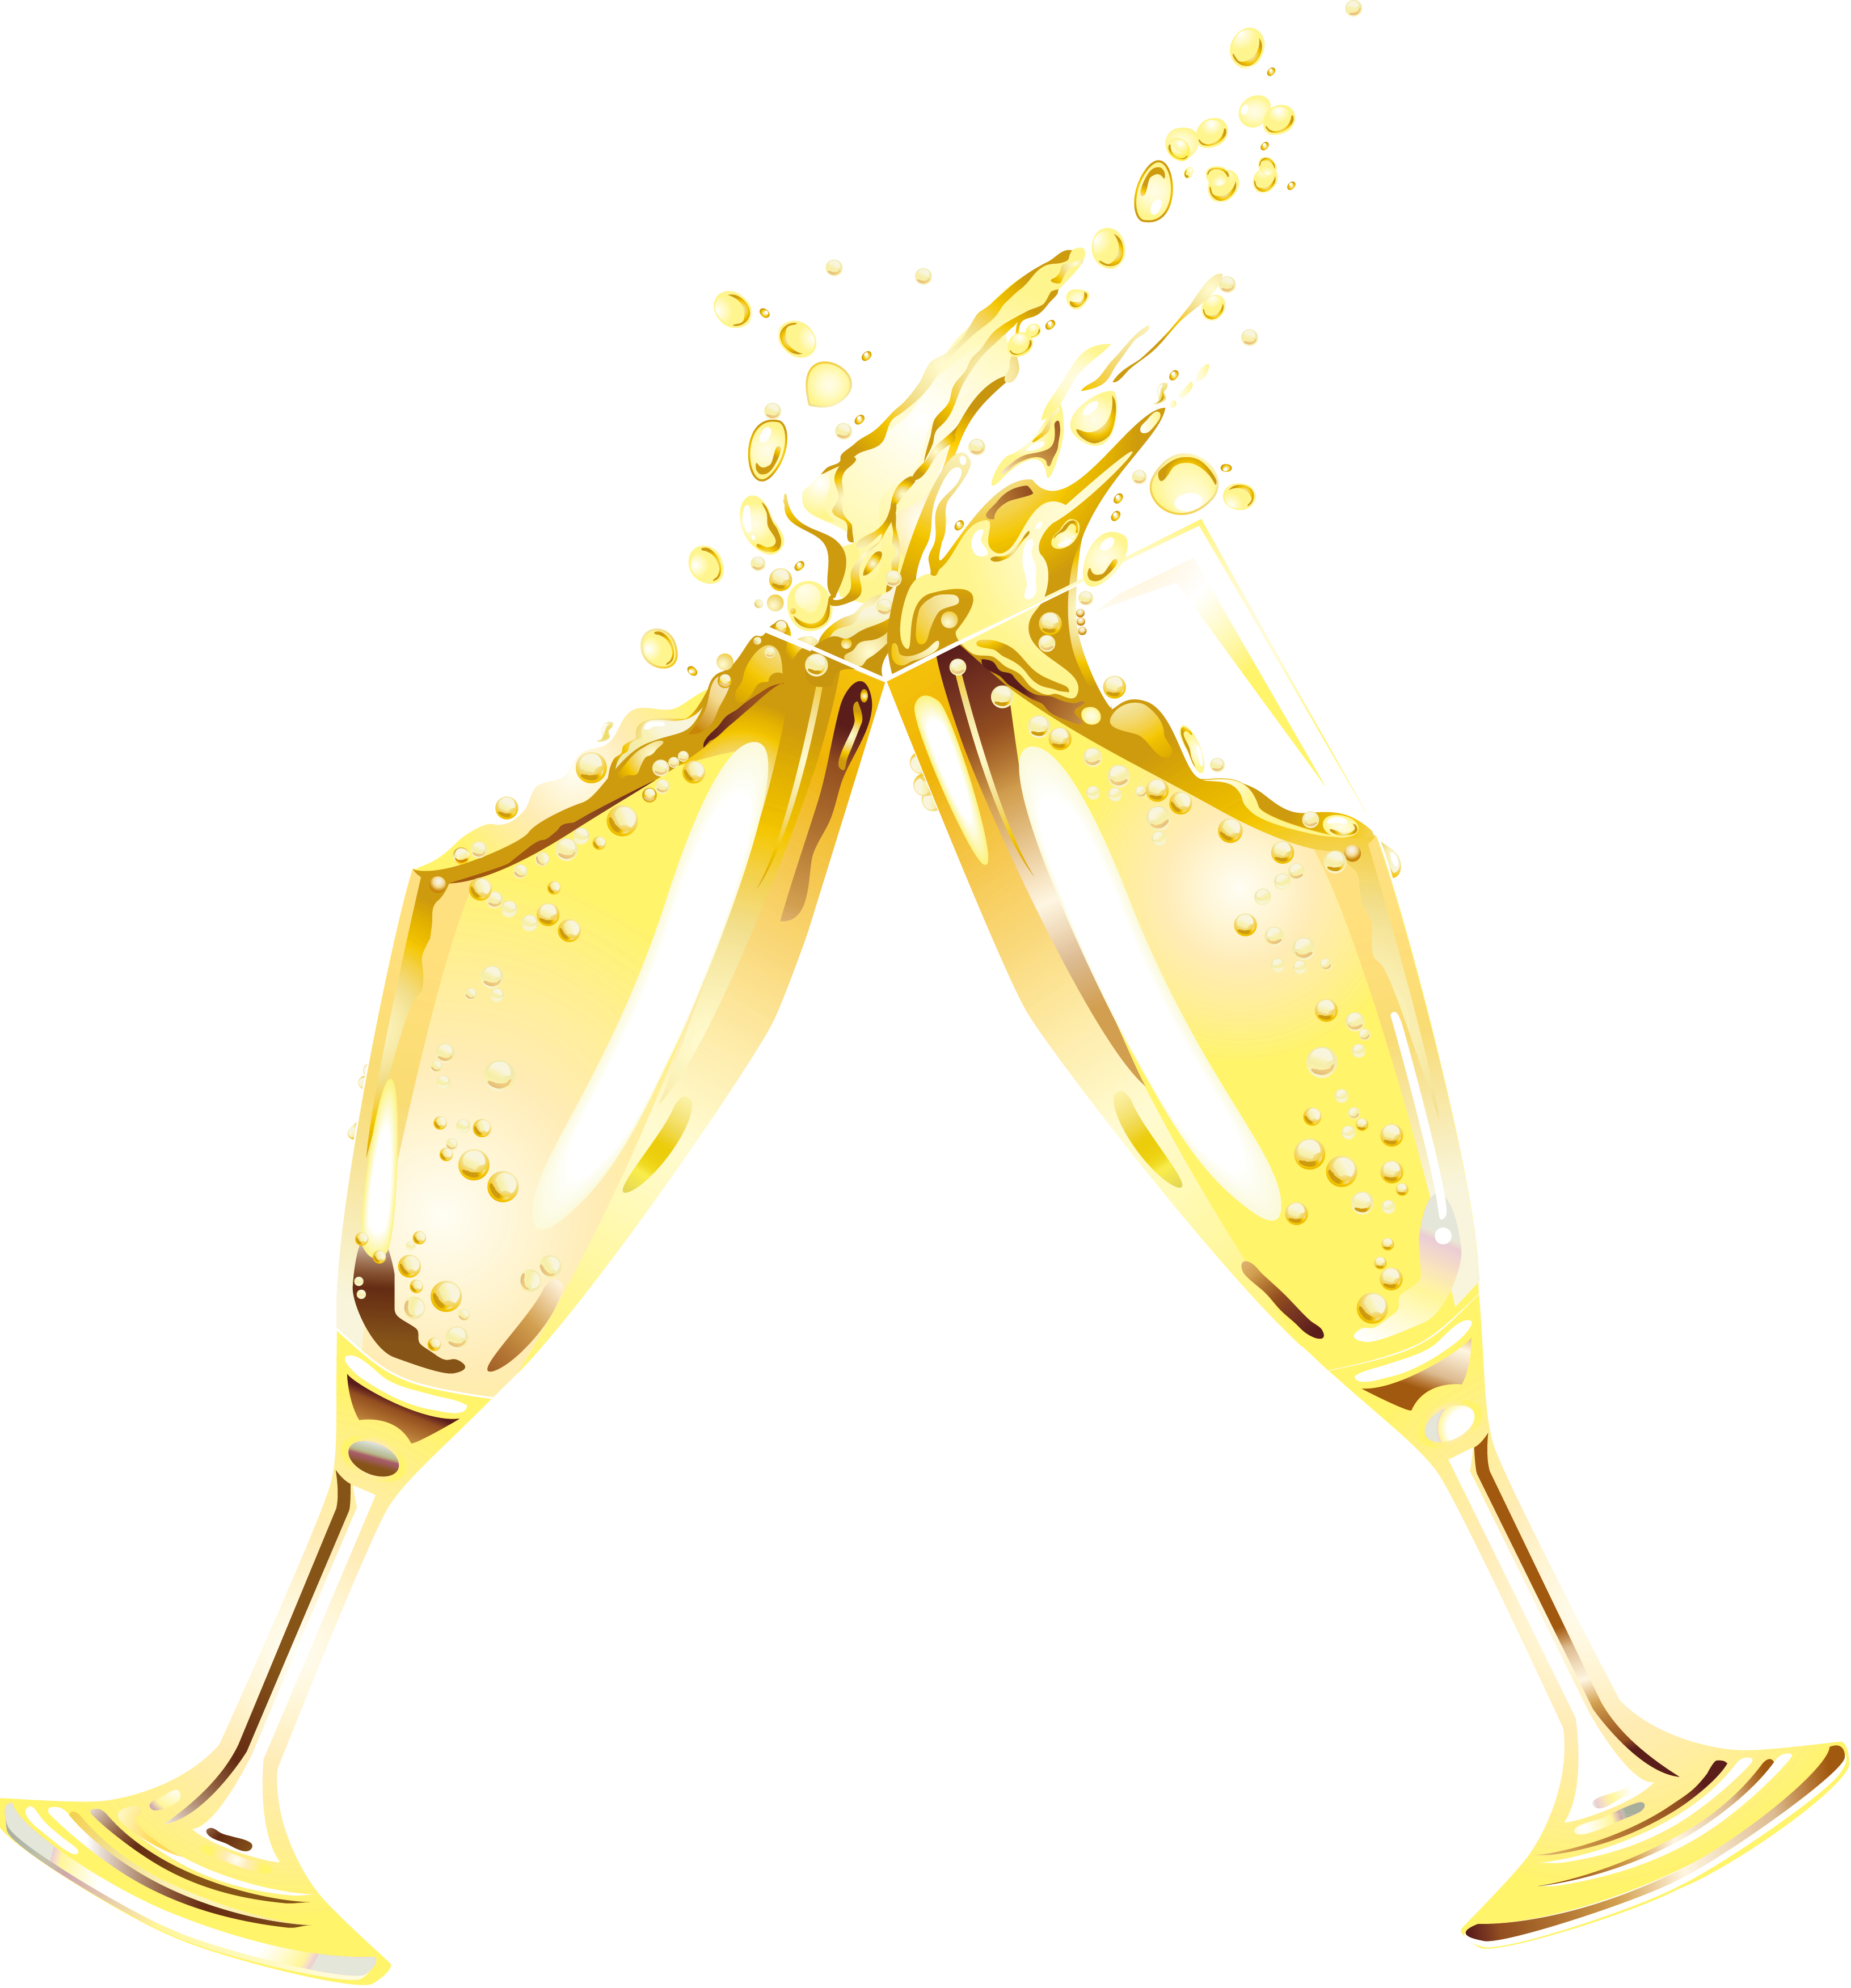 Champaign clipart silver champagne. Glass png photoshop s